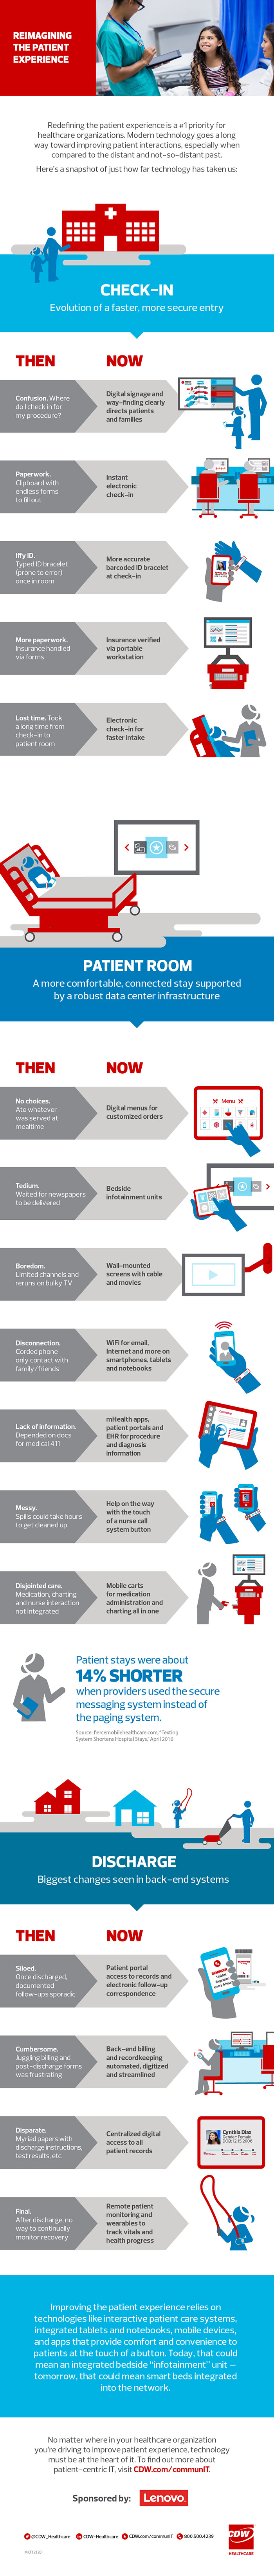 patient care technologies infographic